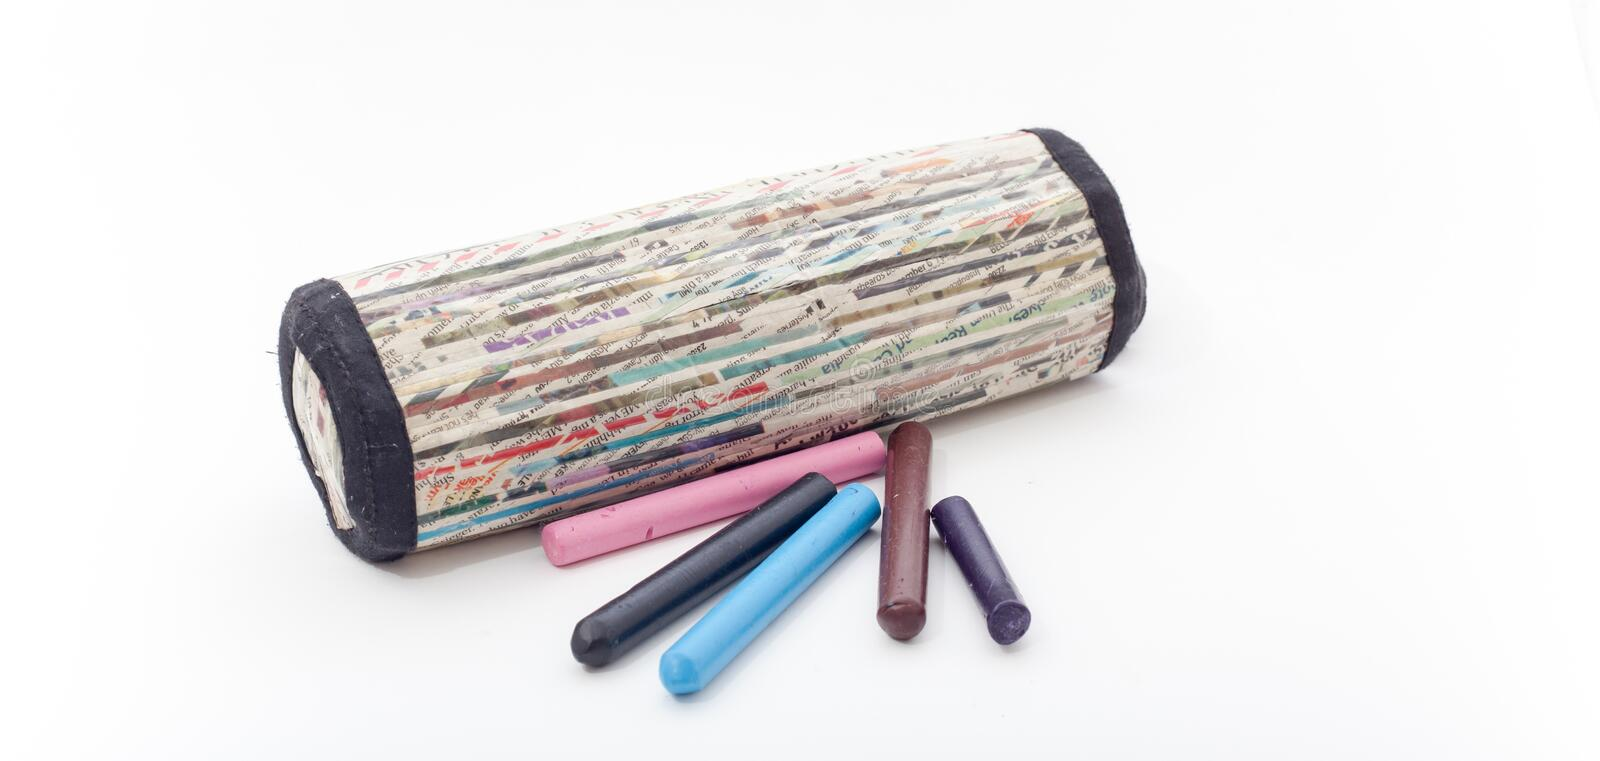 Pencil Box on the wite background, Pencil box isolated. Pencil Box on the wite background stock photo